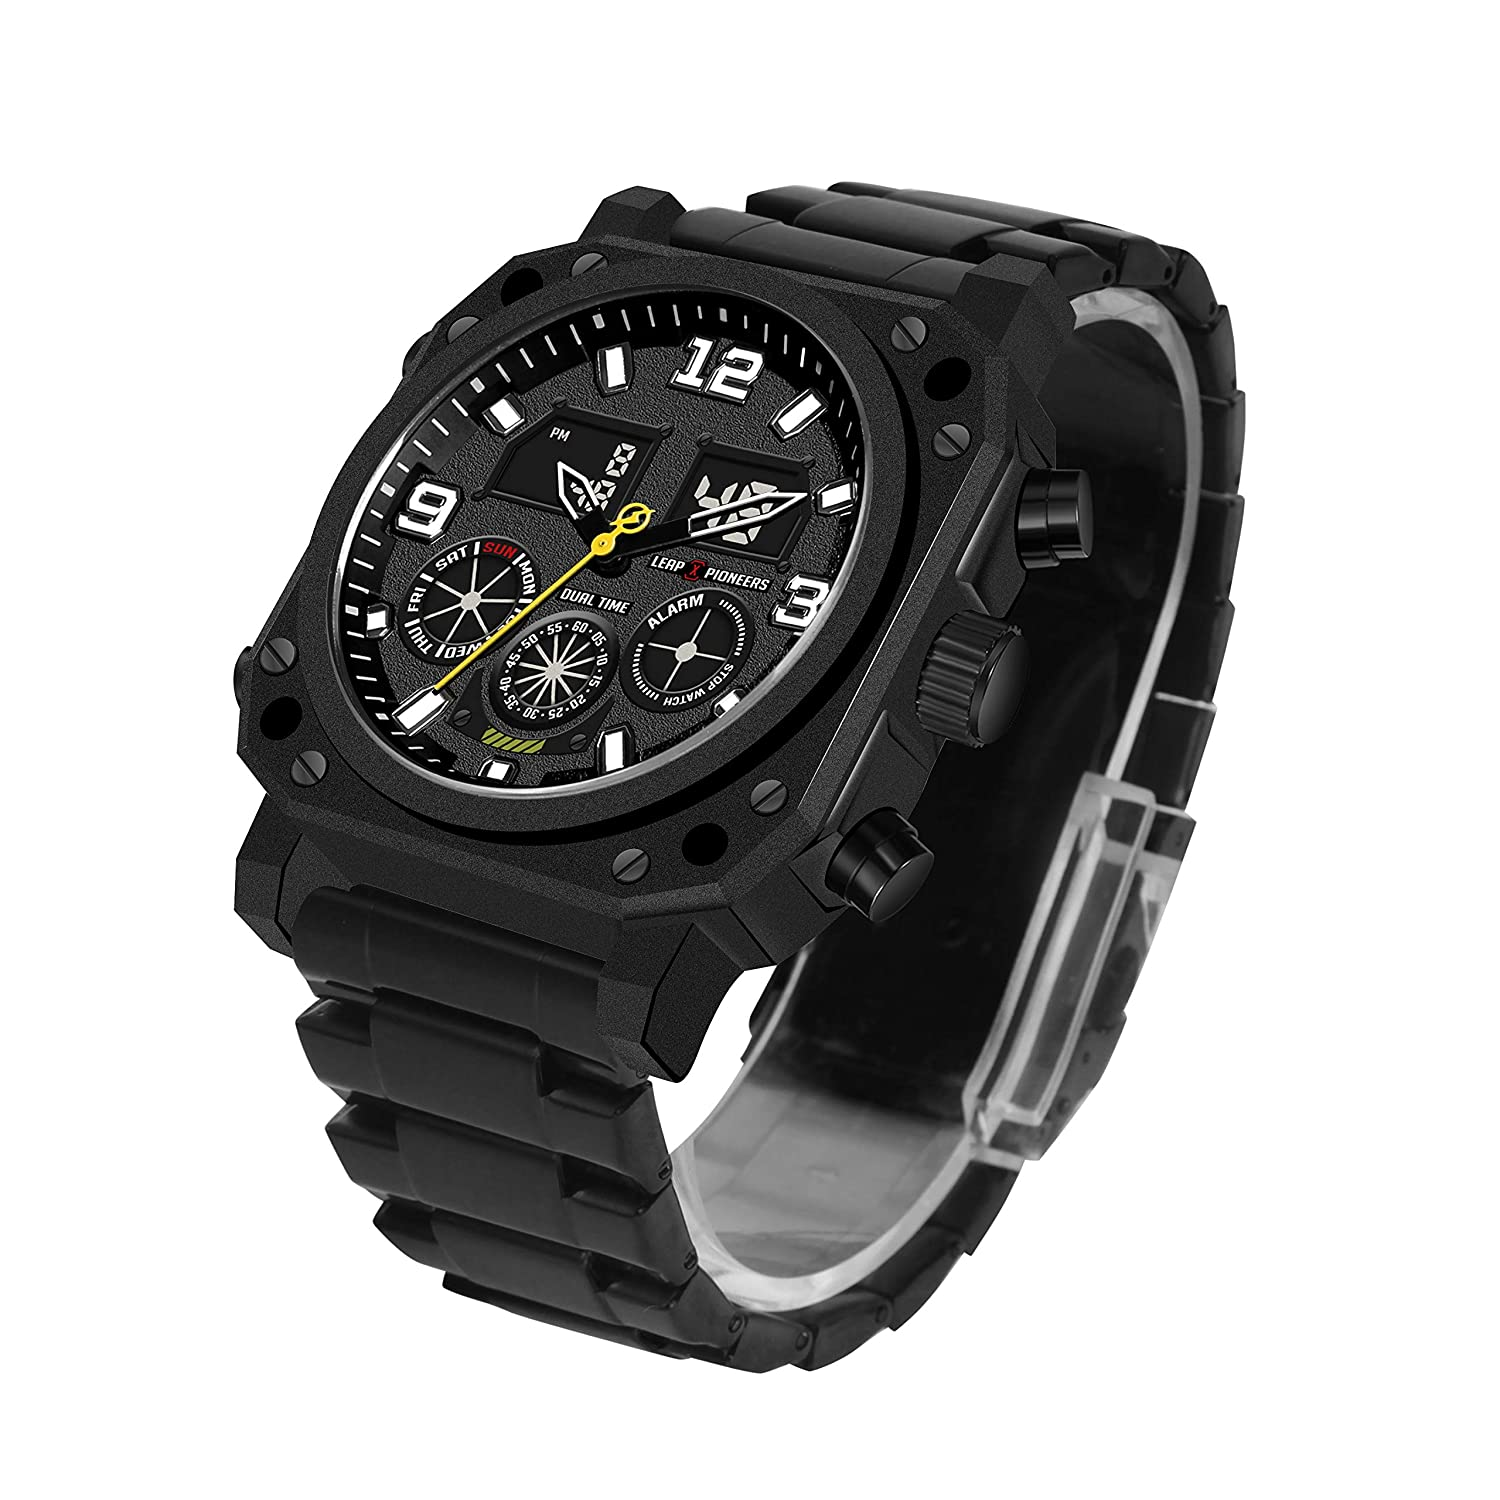 Men s Military Watches,Classic Fashion Casual Watch Waterproof Analog Digital Sports Army Watches for Men LPJ03